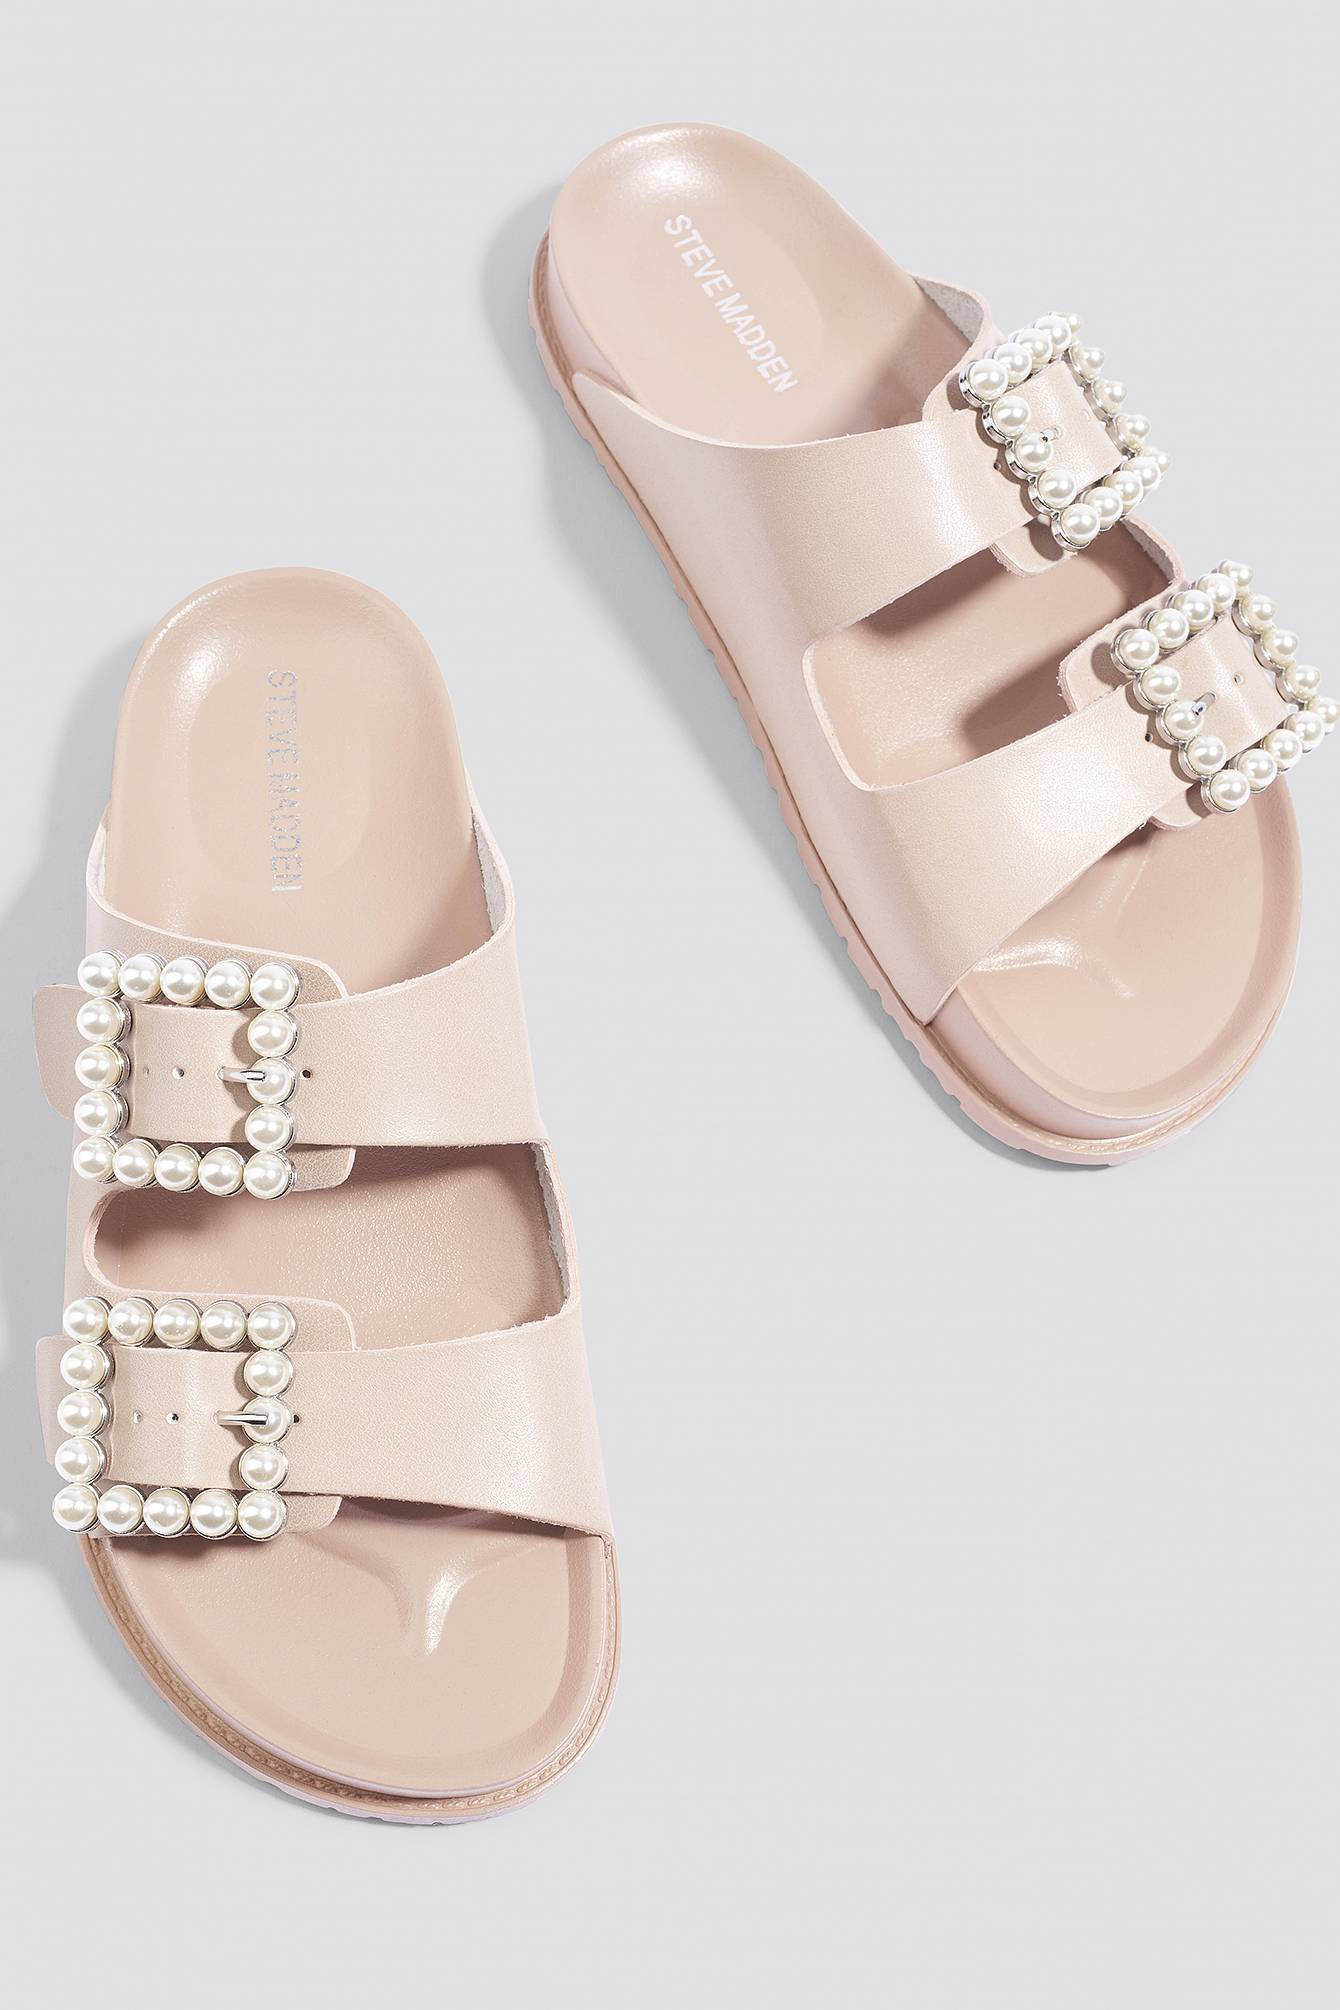 Steve Madden Luxely Flat Sandal - Pink,Nude